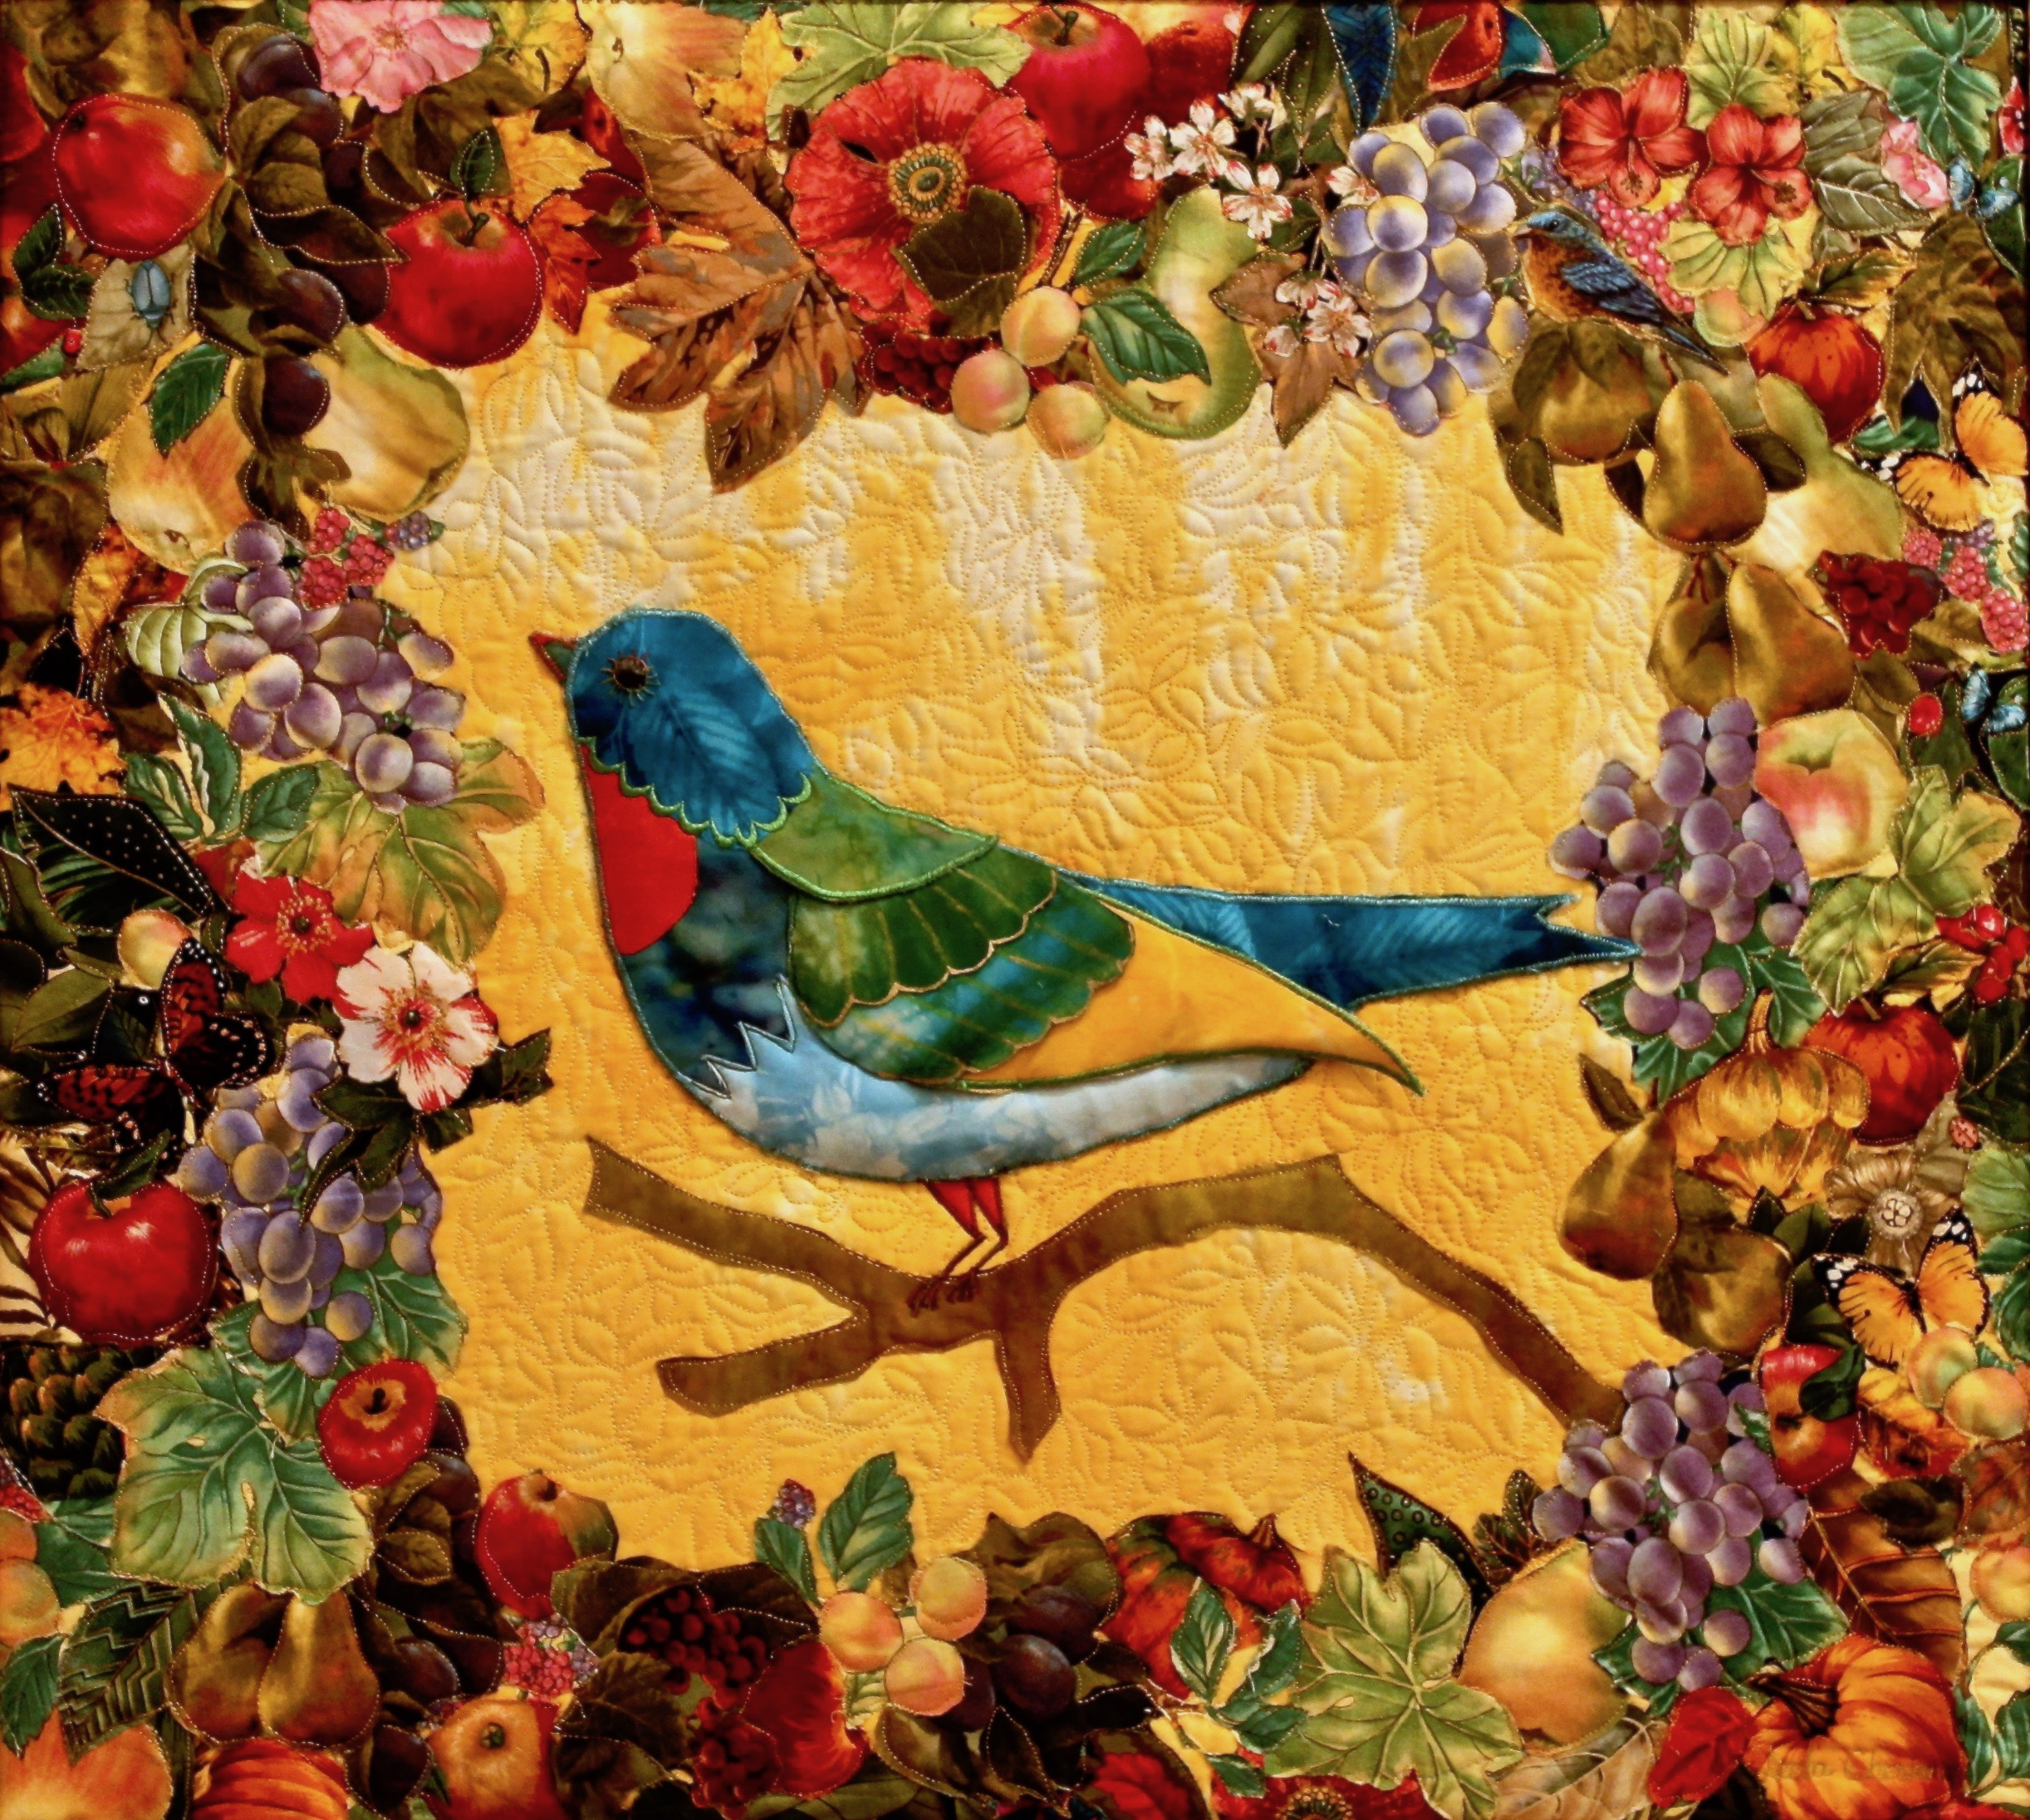 Bird in the Orchard